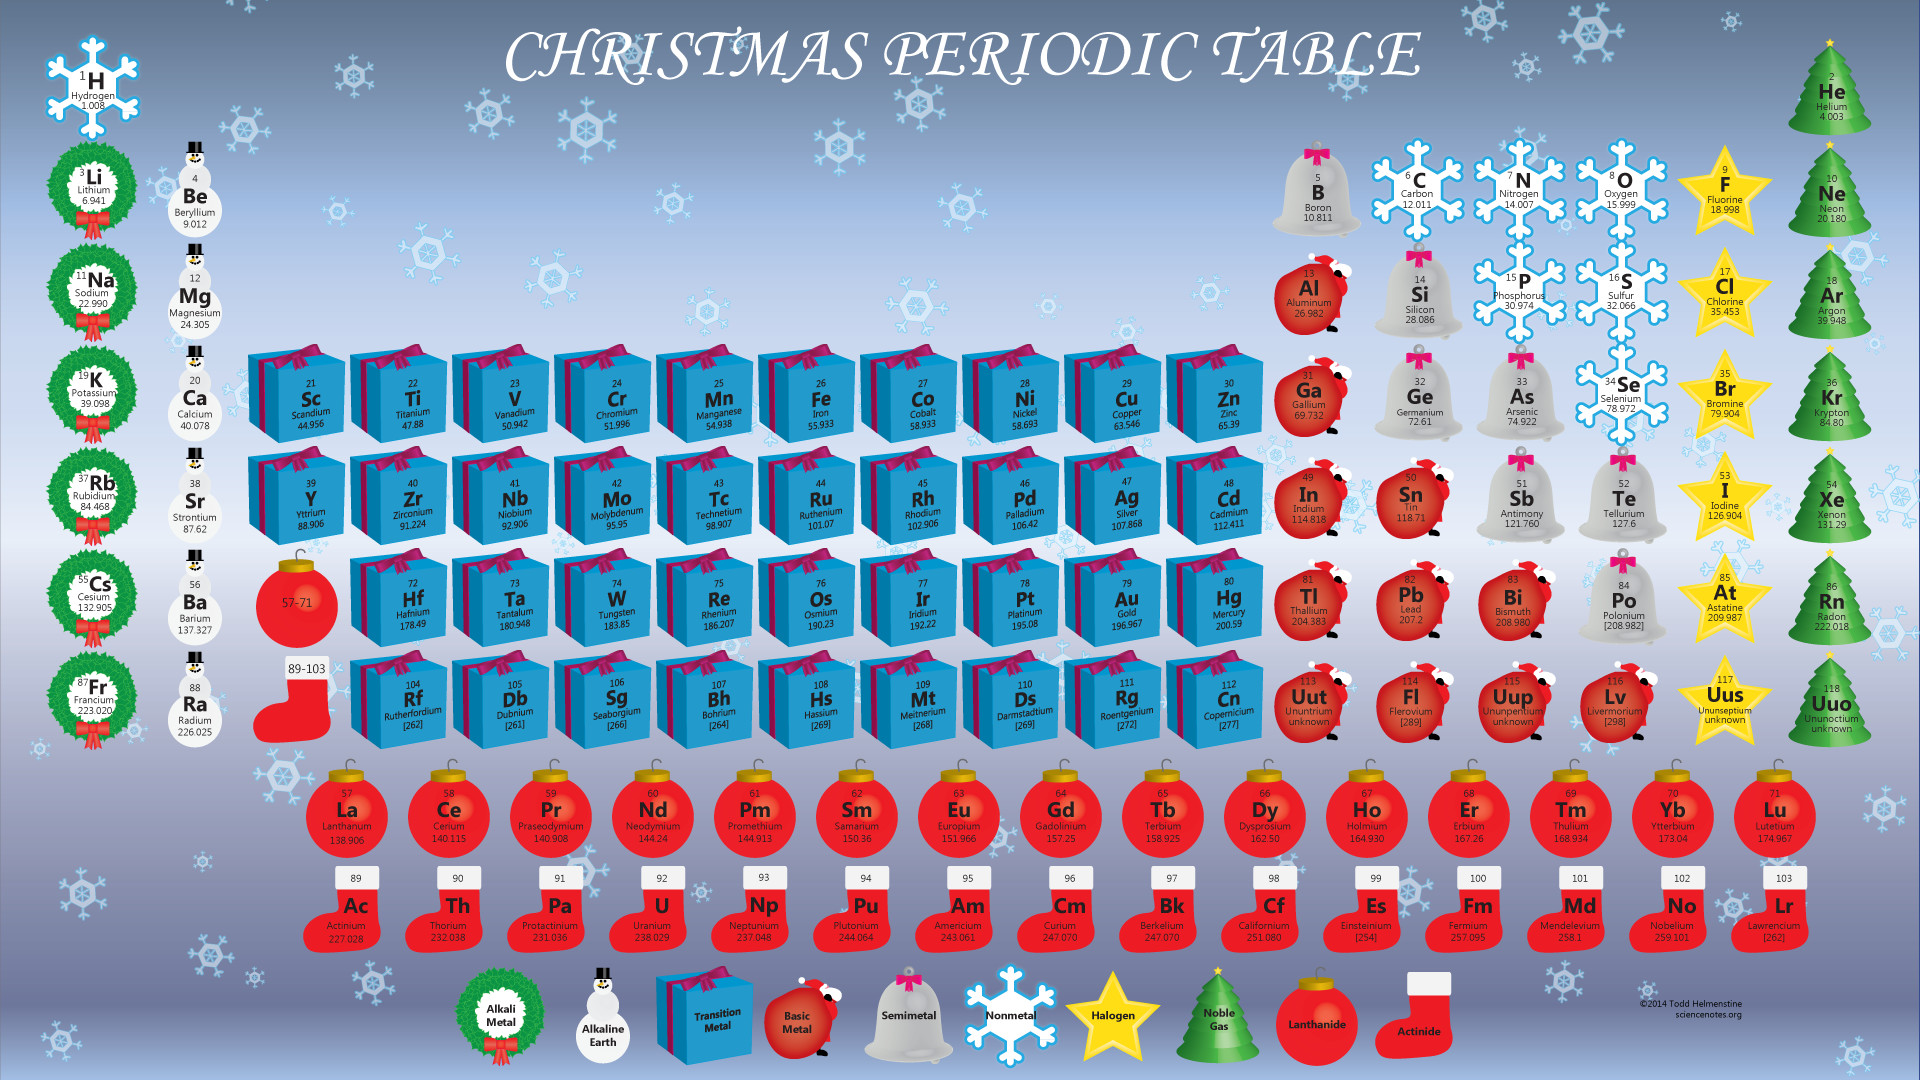 Periodic table mac images periodic table images periodic table hd wallpaper choice image periodic table images periodic table wallpaper mac hd wallpaper elements gamestrikefo Image collections